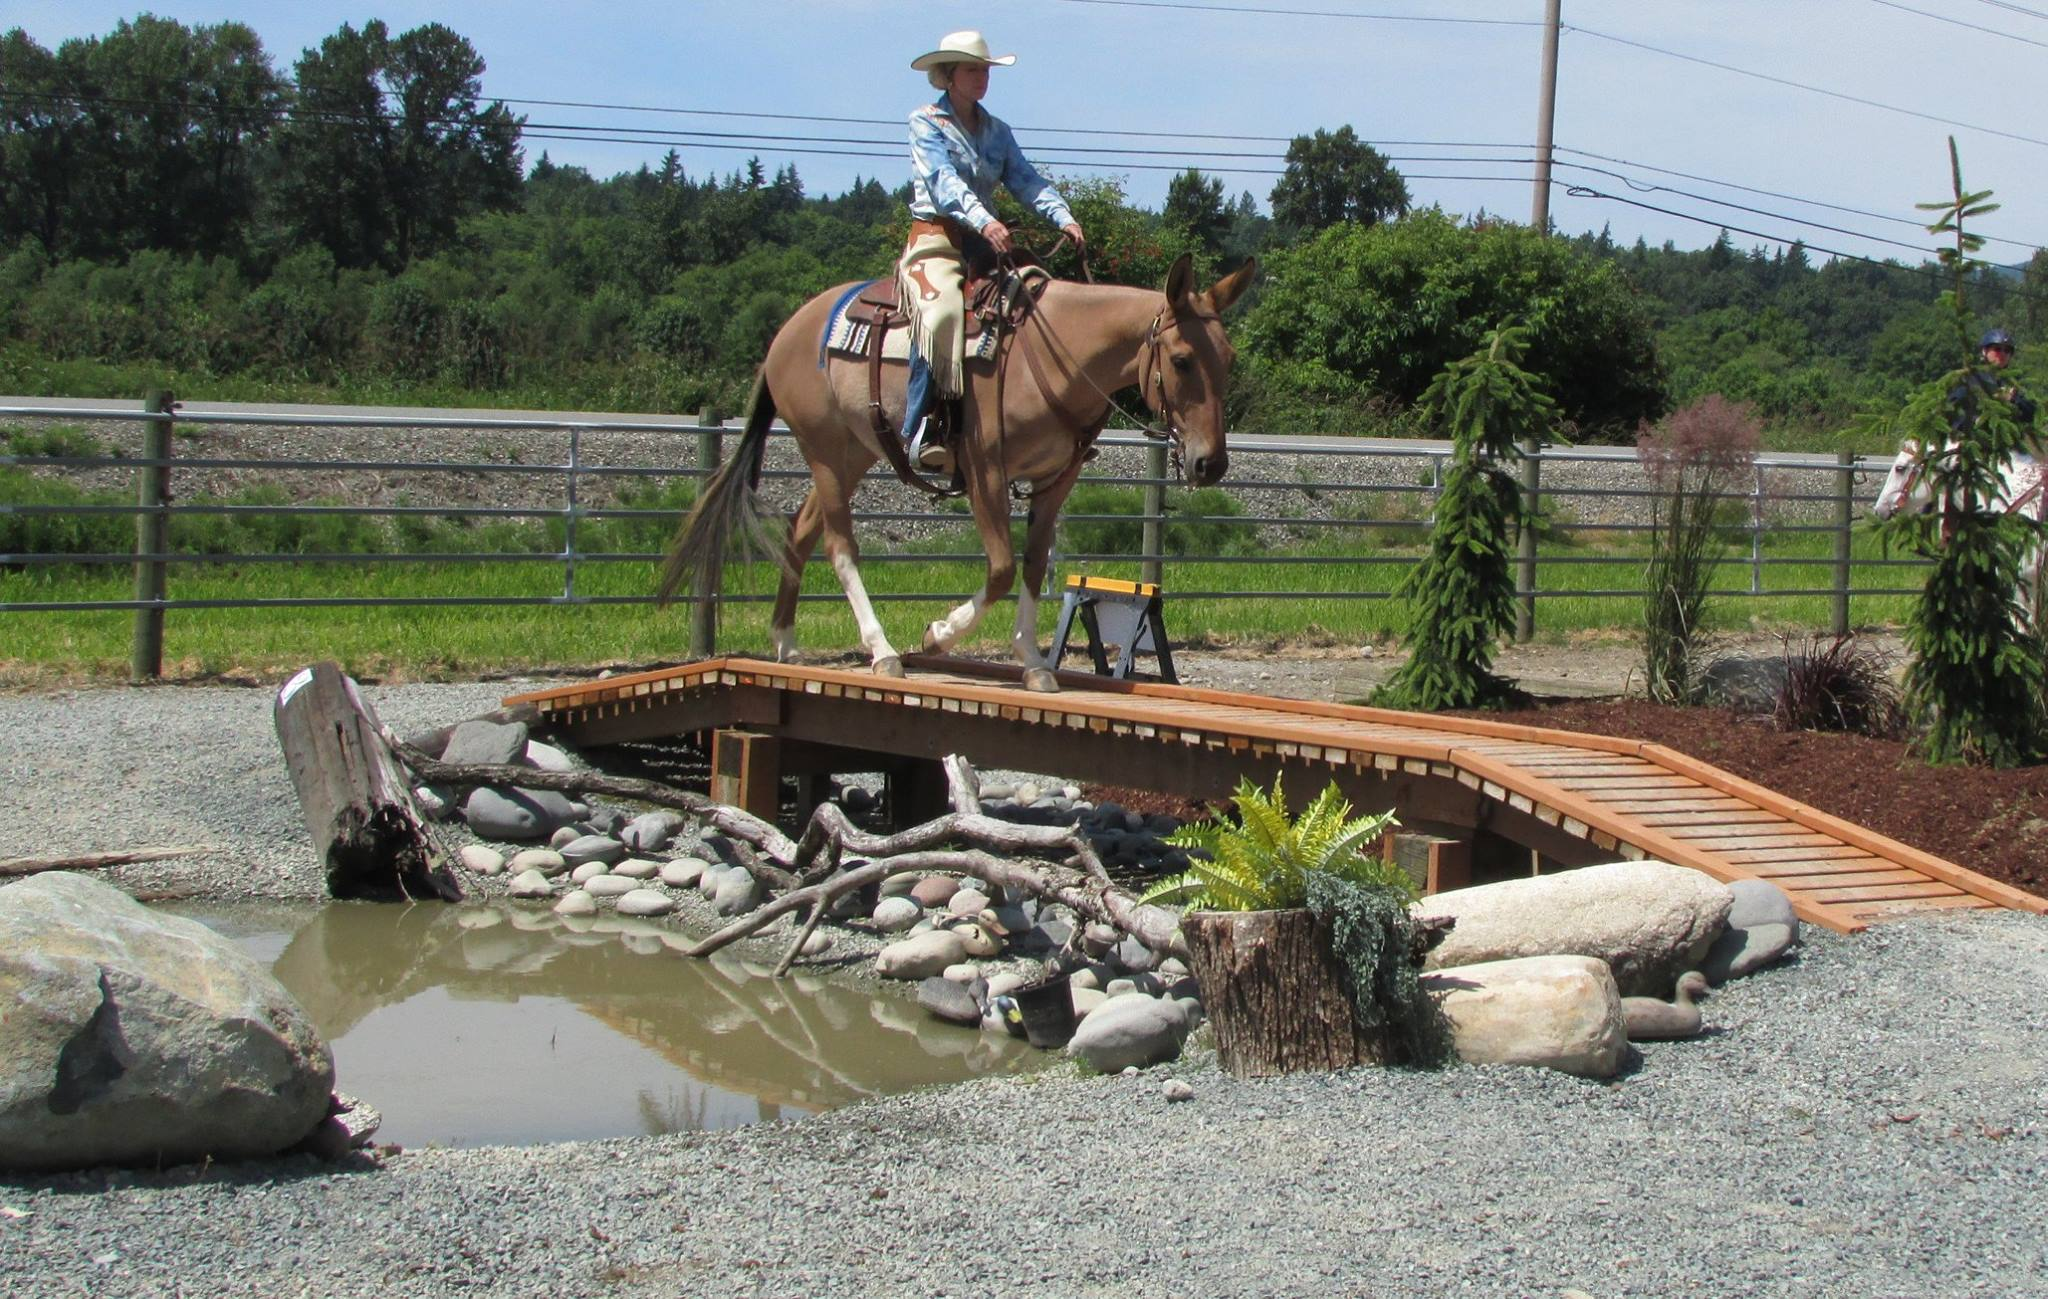 Obstacle Training for Show or a better relationship with your horse clinics, horsemanship, manners, confidence. Cindi has been training people and horses through the use of obstacles for over 25 years. The use of obstacles is also the best way to help people understand the way a horse learns and thinks.